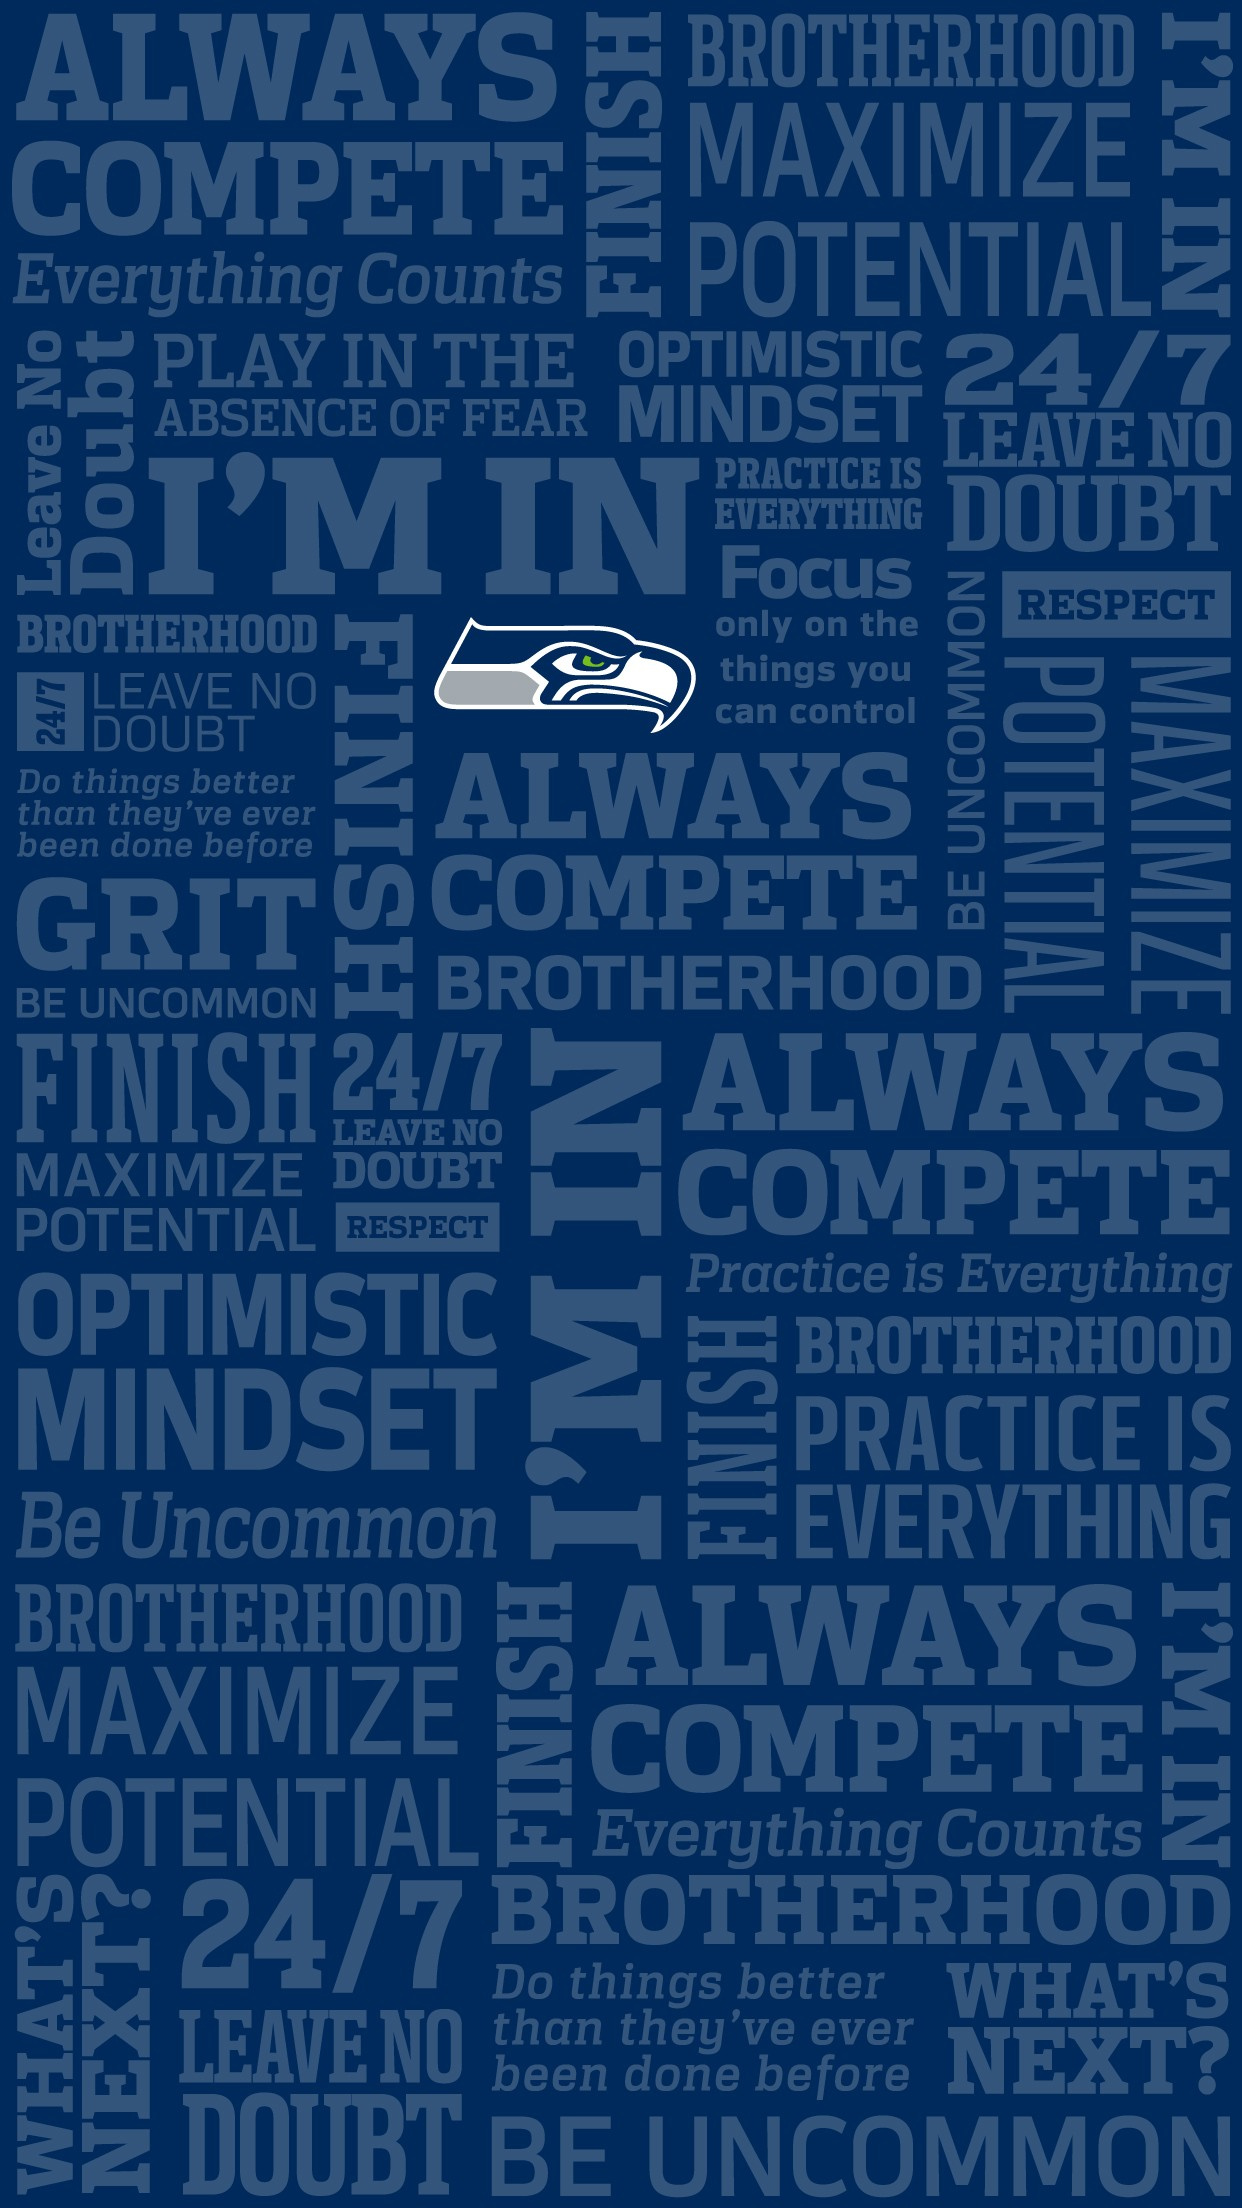 How To Make A Dynamic Wallpaper For Iphone X Seattle Seahawks Wallpaper 183 ① Download Free Hd Wallpapers